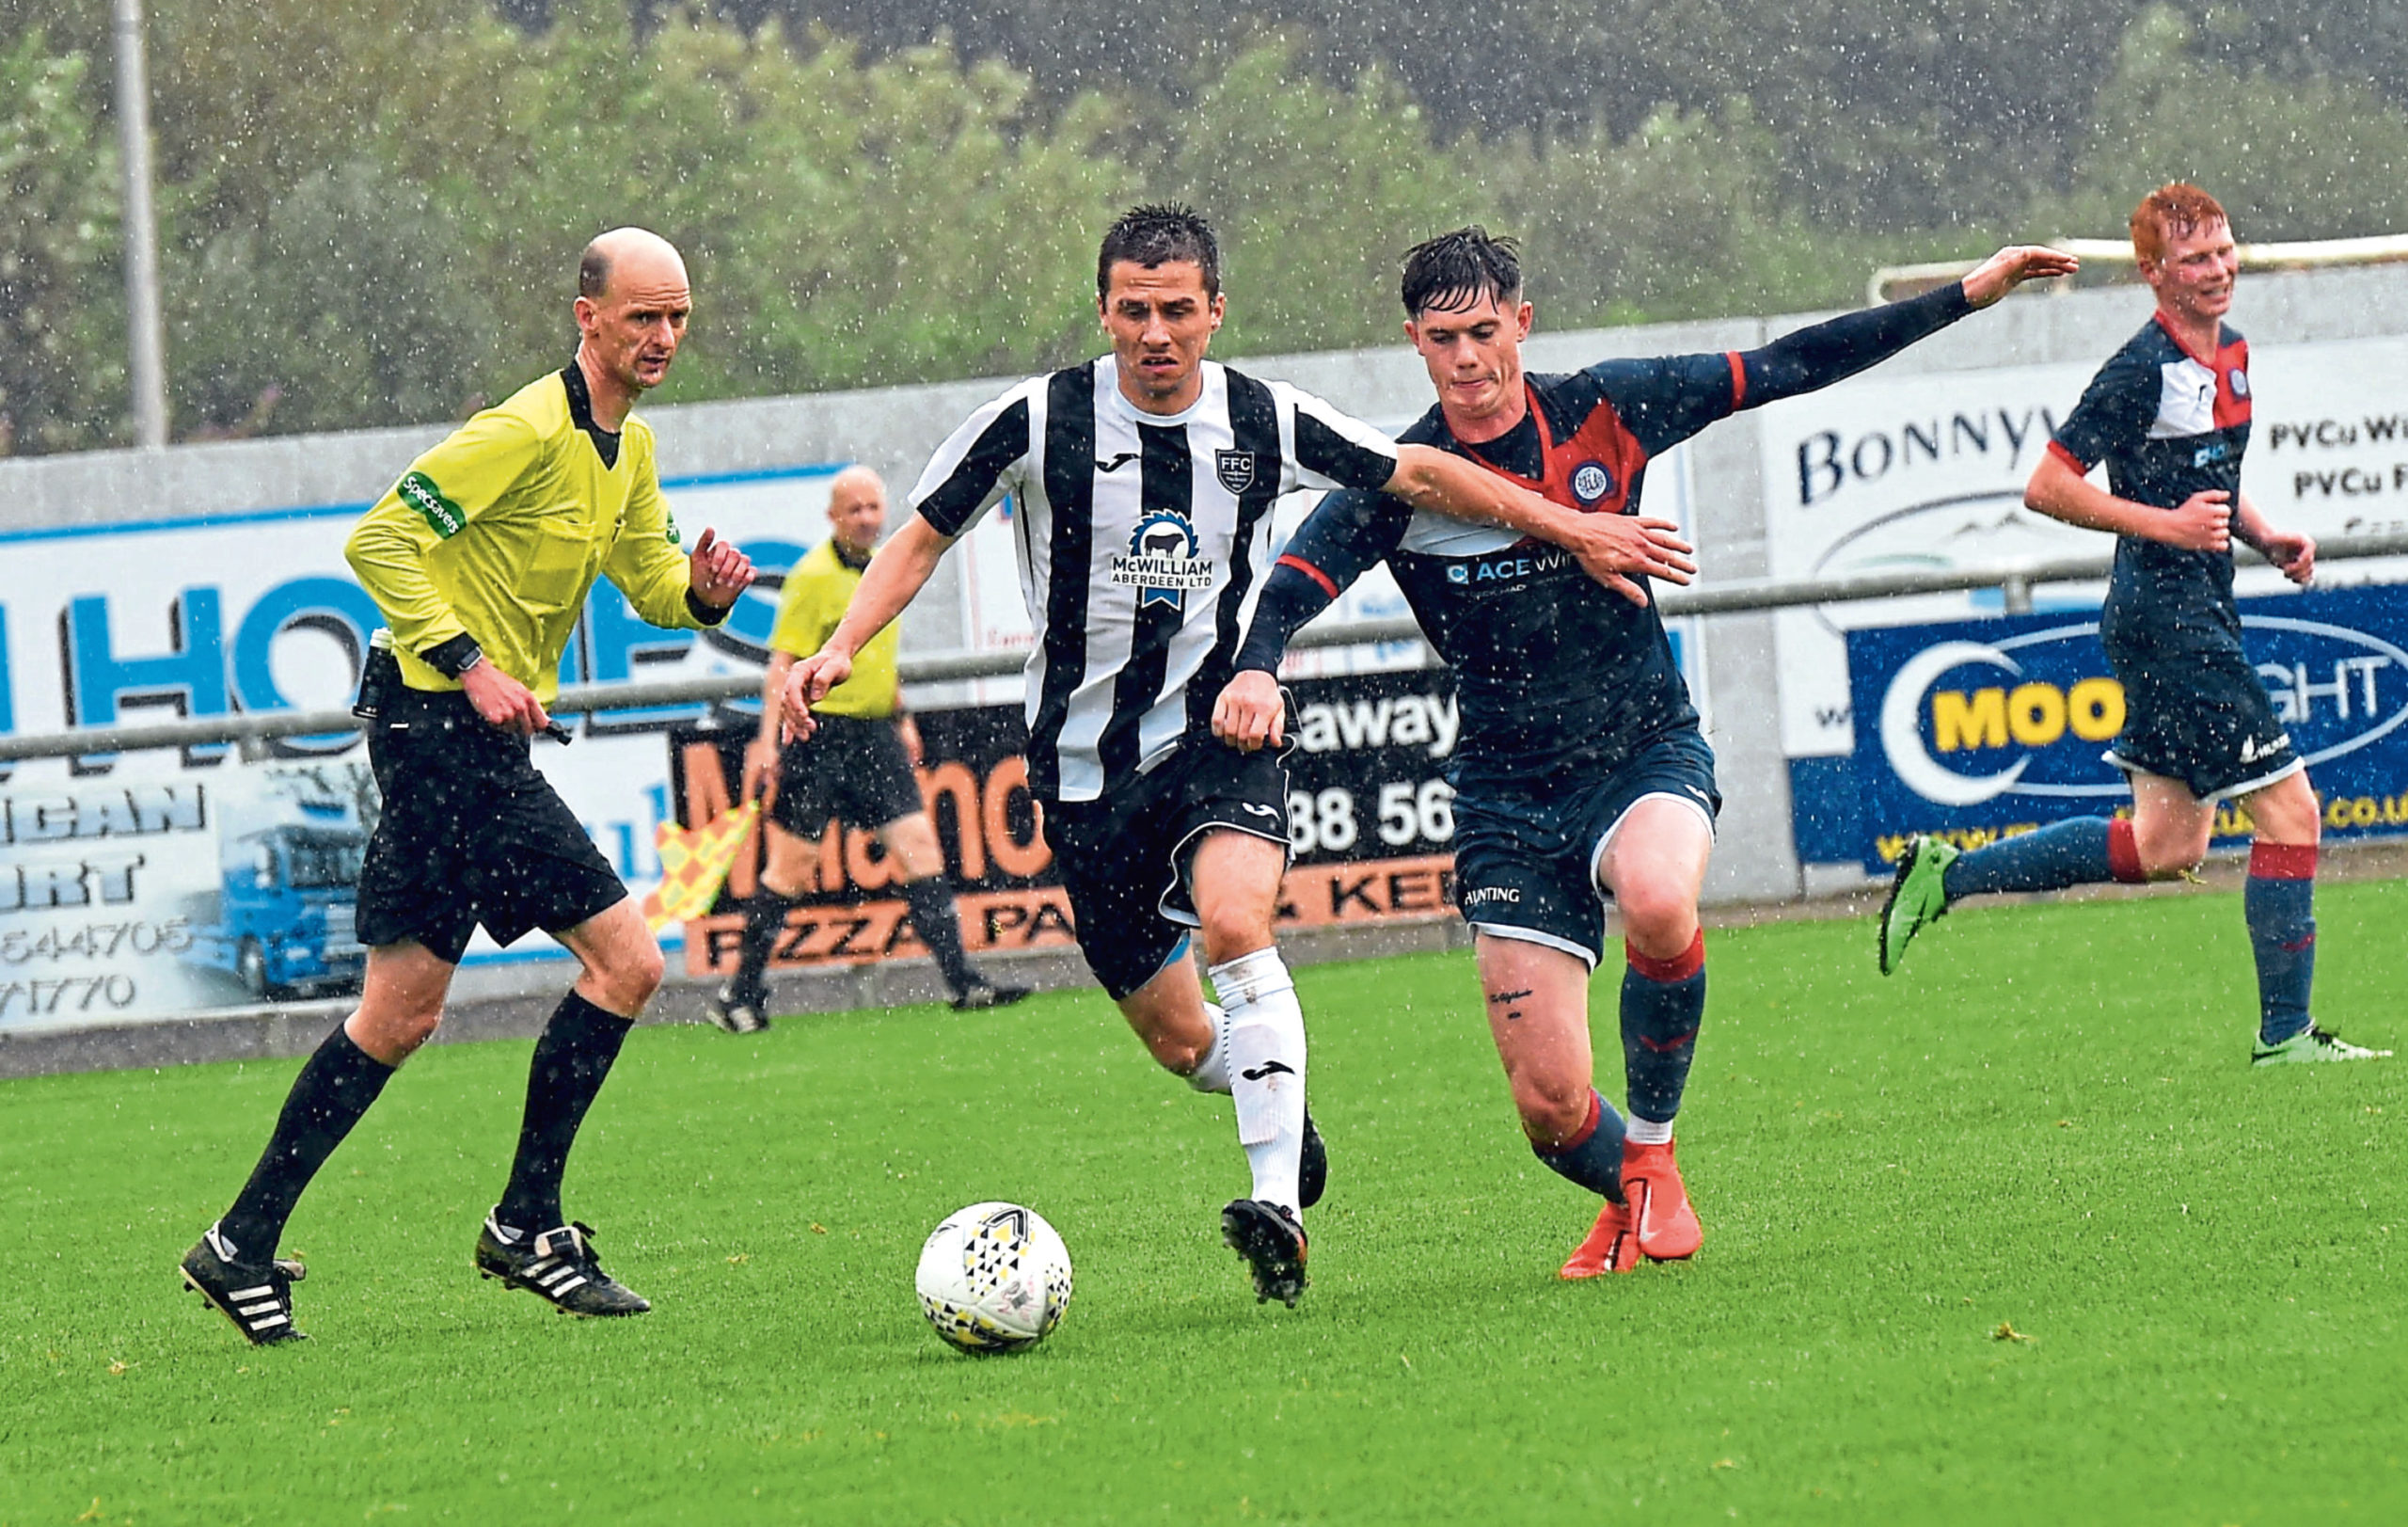 Paul Young drives forward with the ball for the Broch.